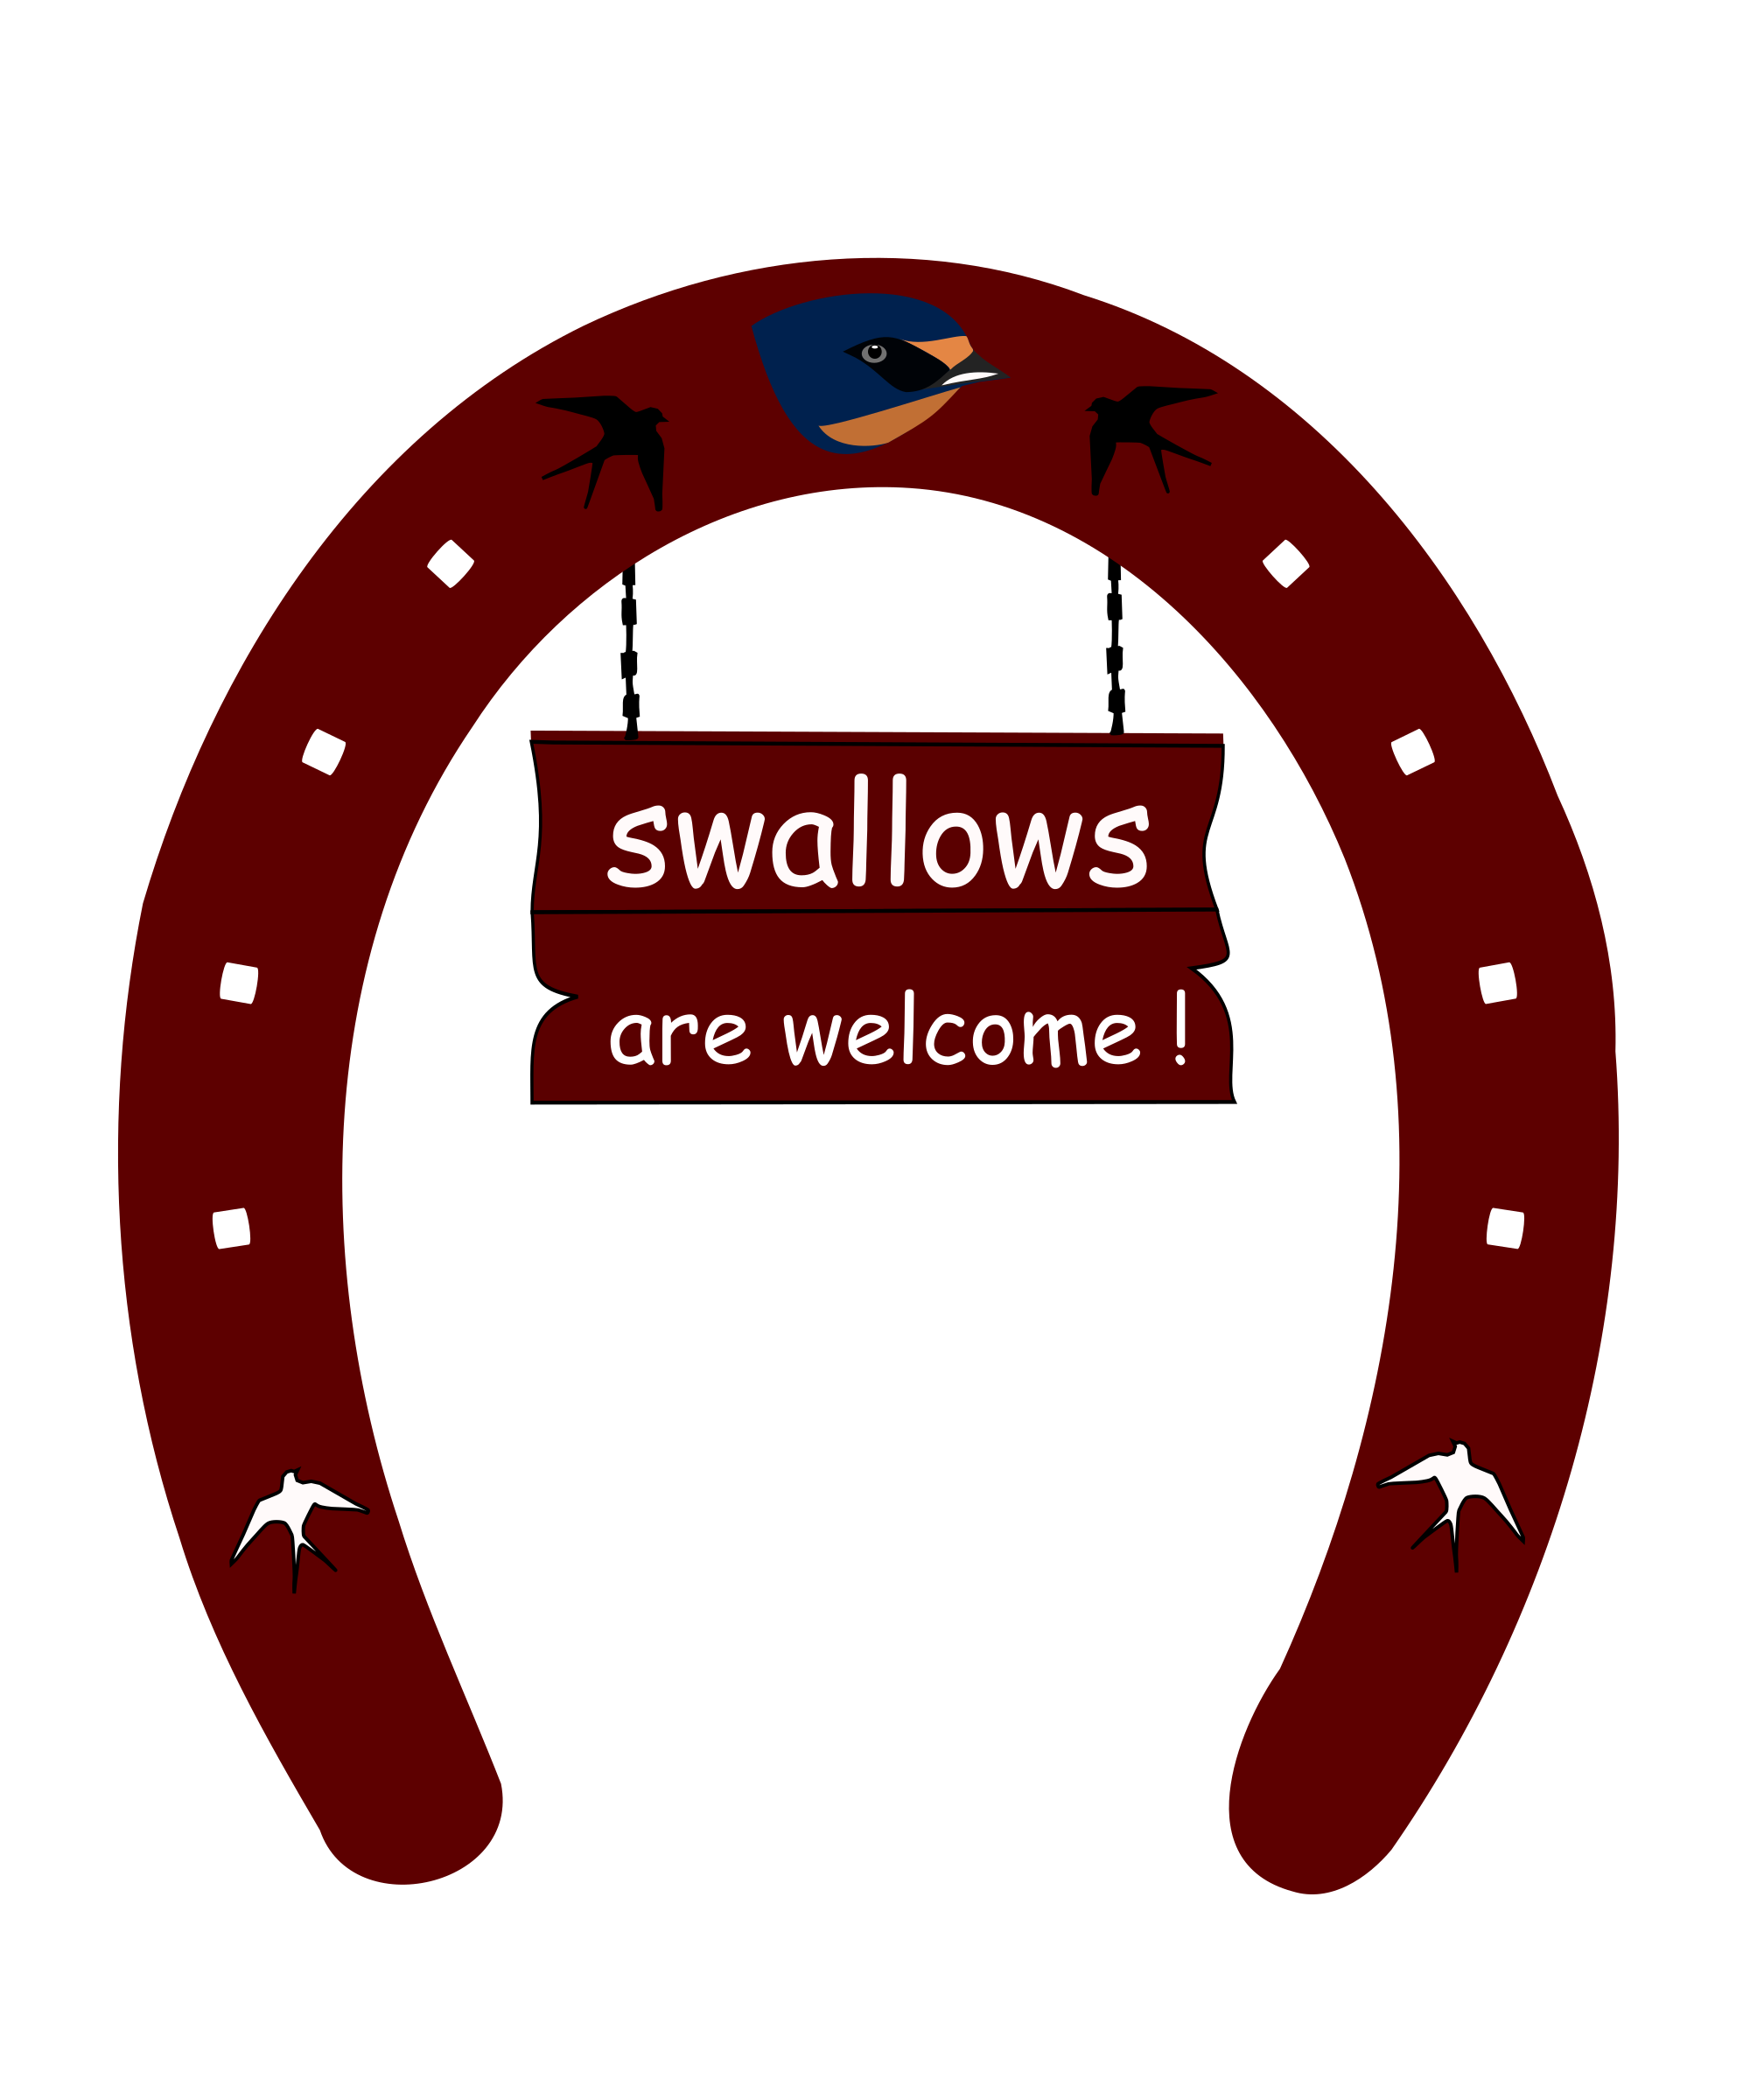 Swallow welcome icons png. Horseshoe clipart svg